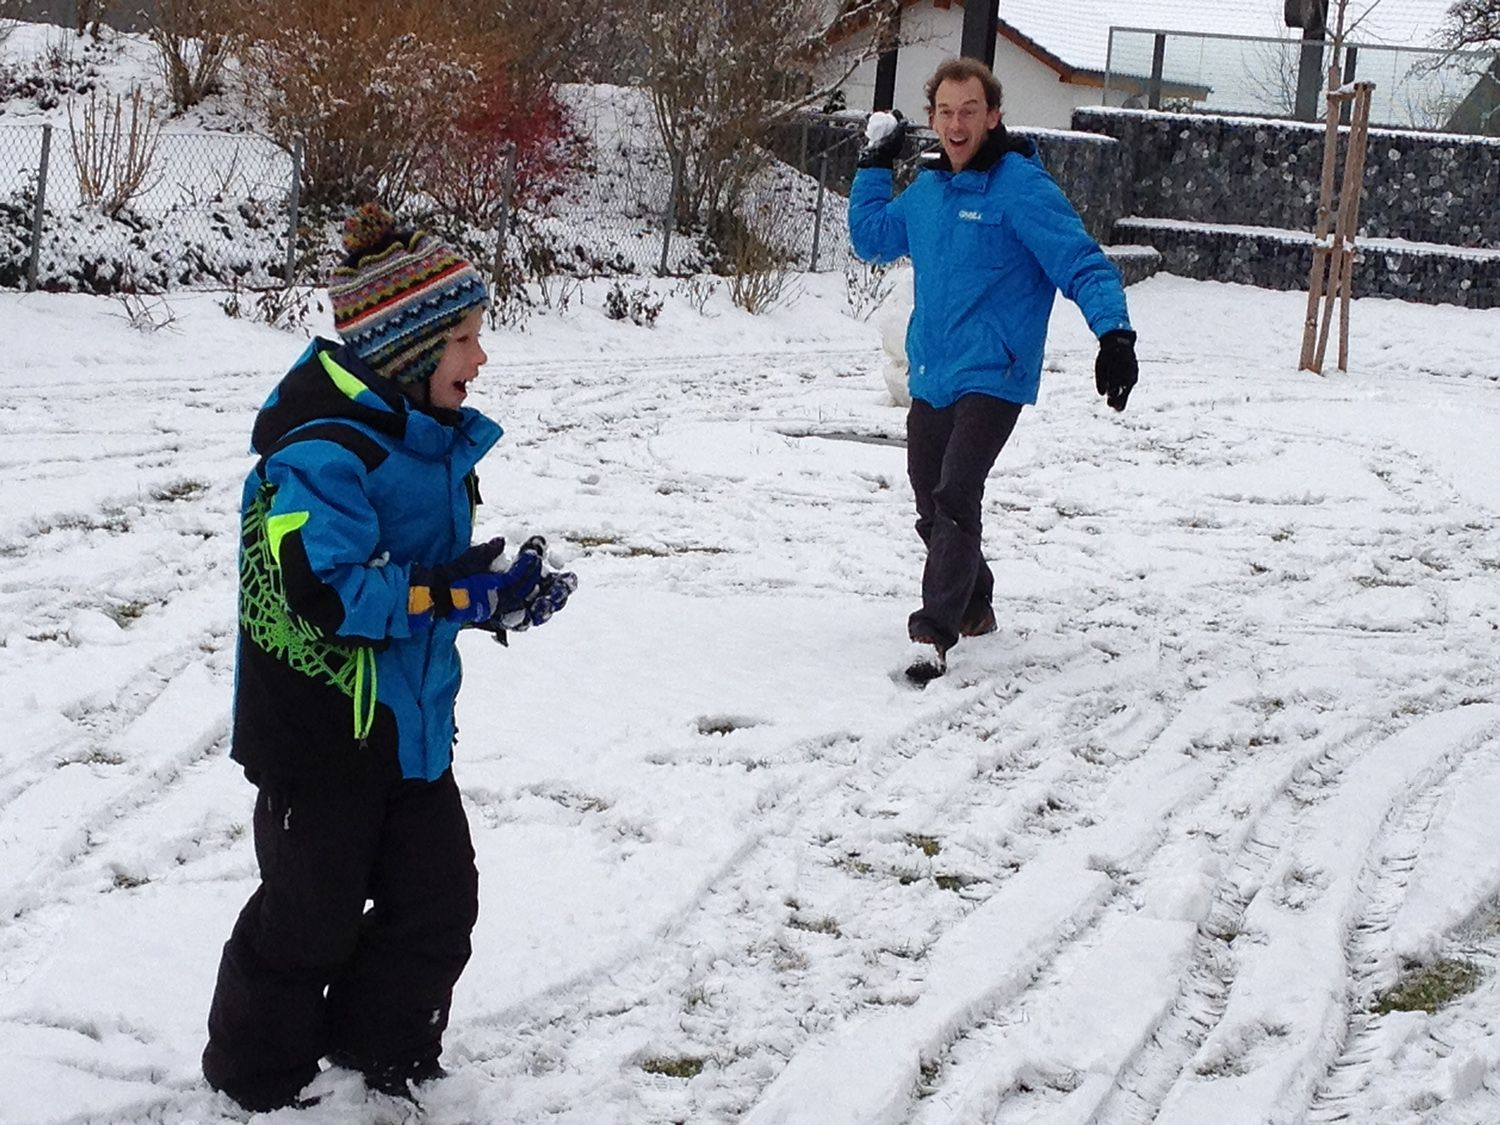 #TBT A great snow ball fight with my son from last winter.